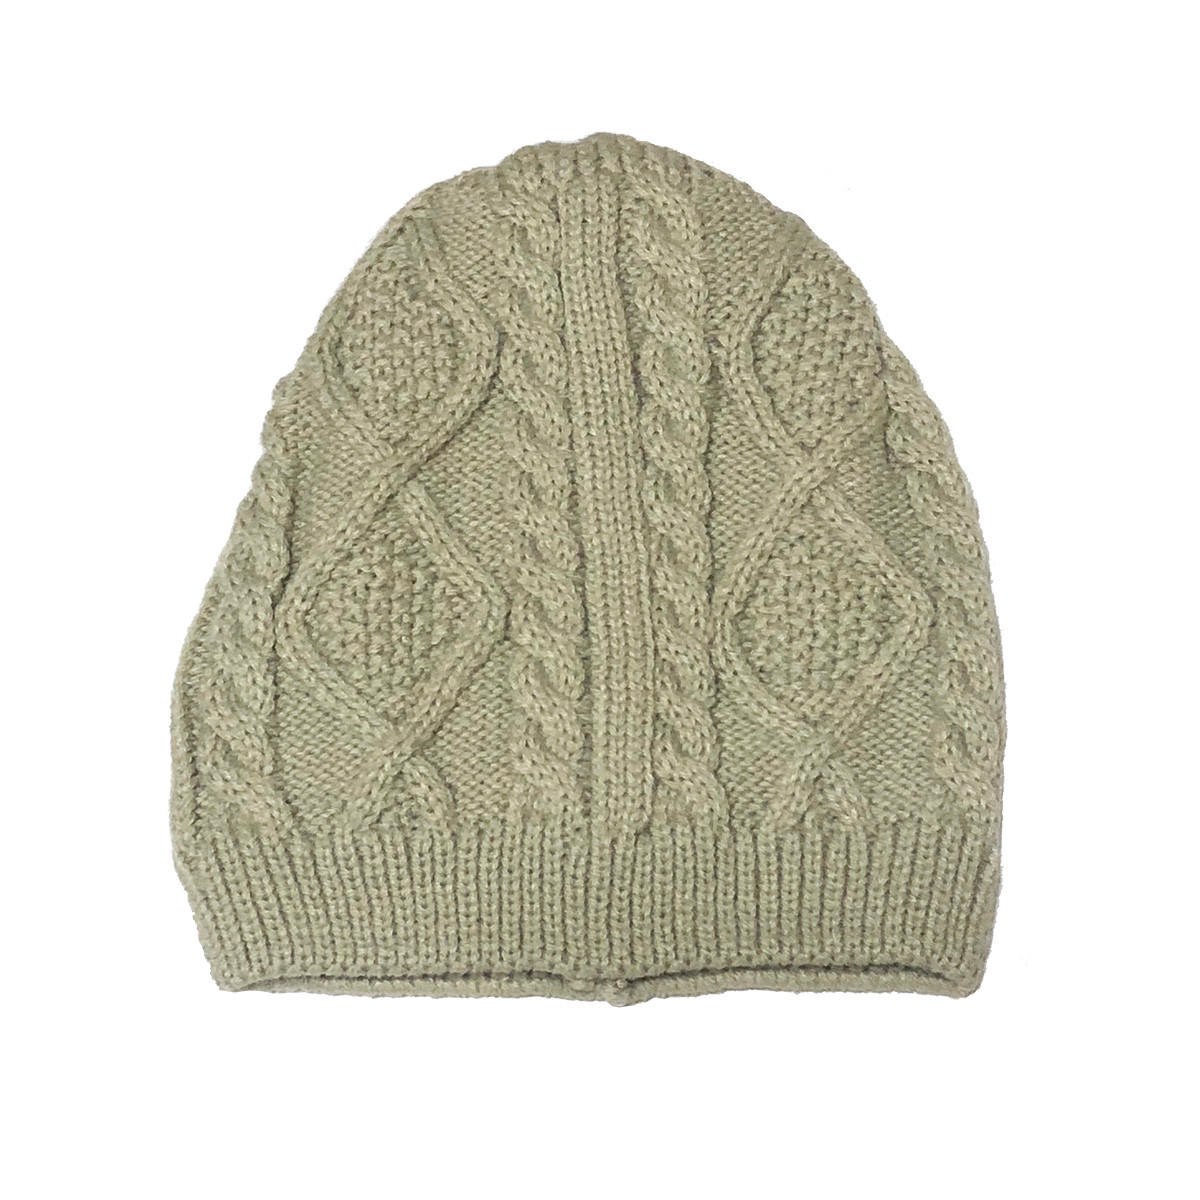 4fa2277f1d0 Cream Kids Cable Knit Hat - The Natural Hair Shop